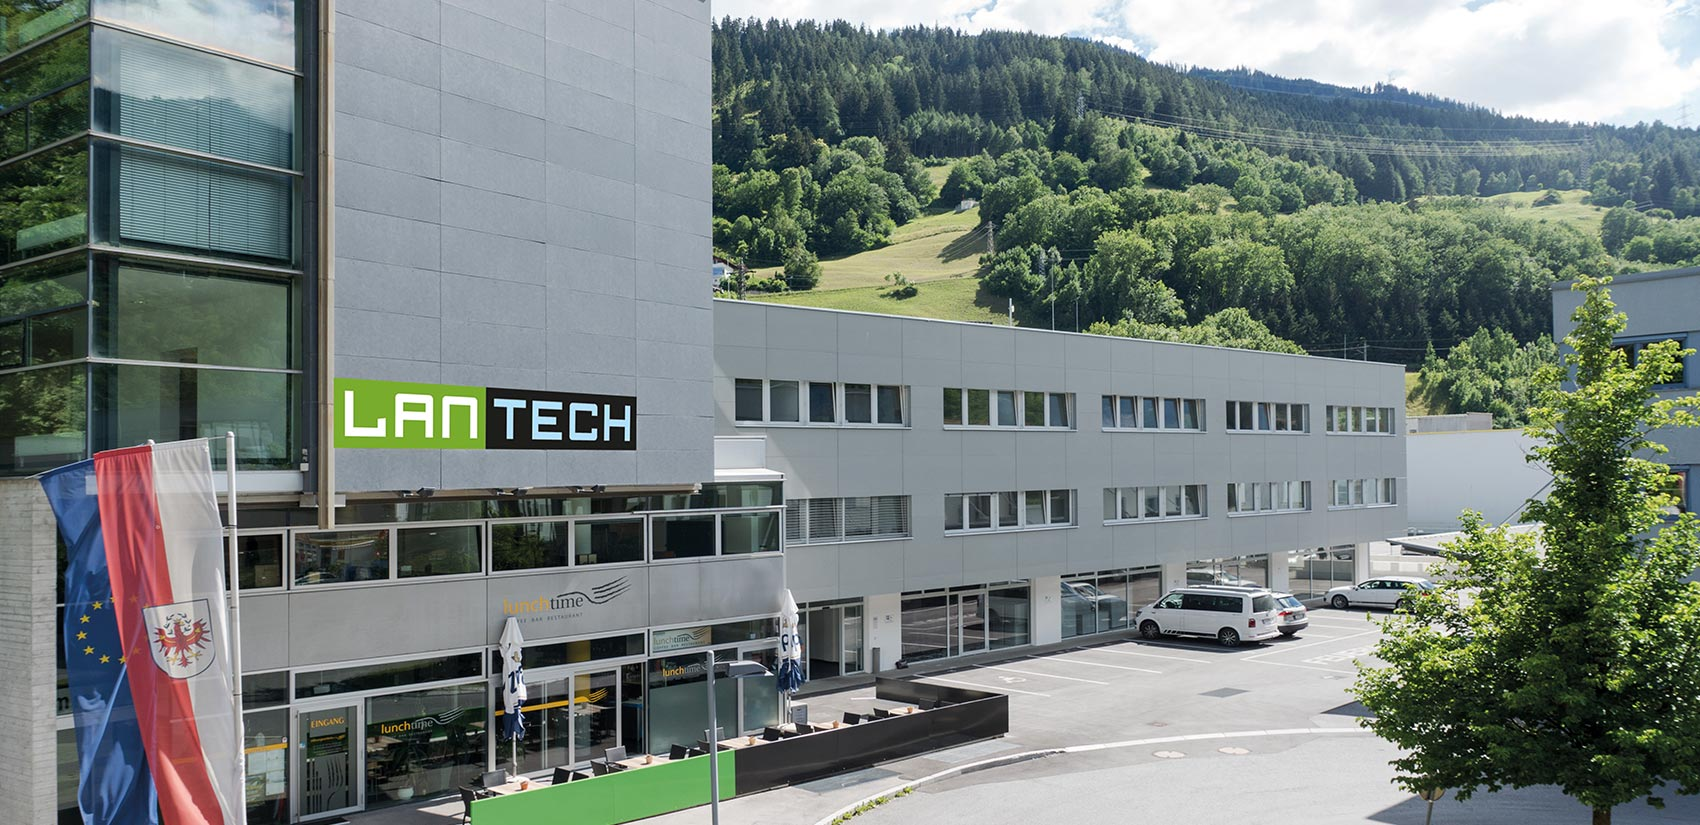 Das Innovationszentrum Lantech in Landeck